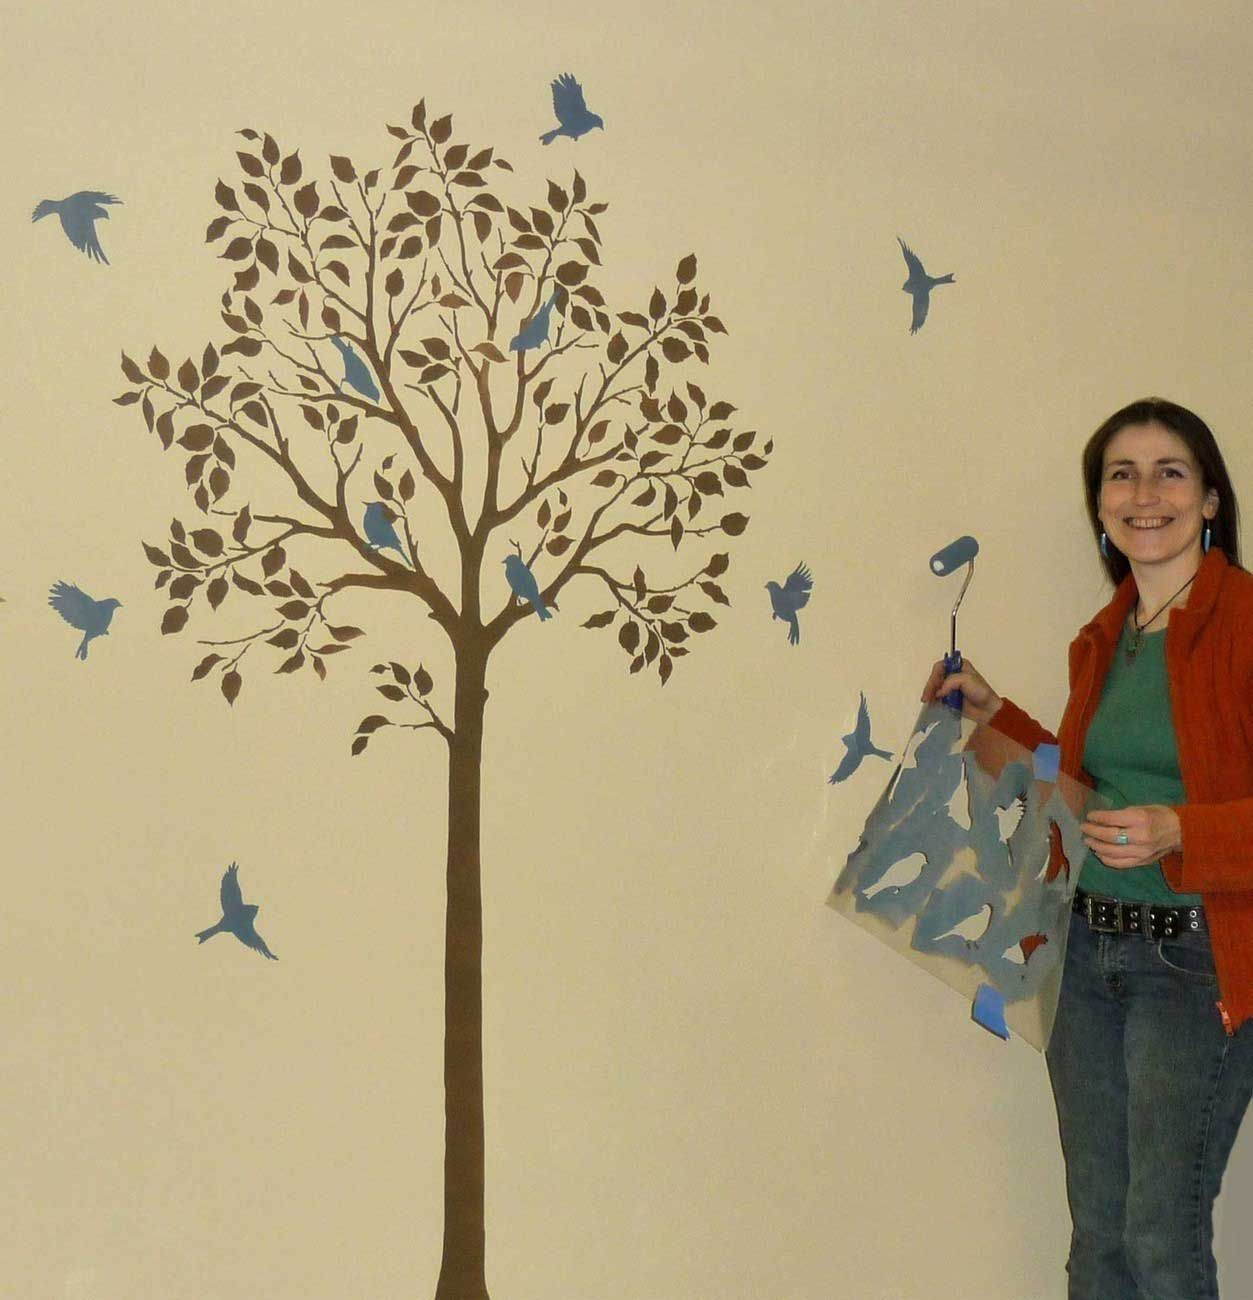 Stencils of trees for walls image collections home wall stencils of trees for walls gallery home wall decoration ideas stencils of trees for walls choice amipublicfo Gallery